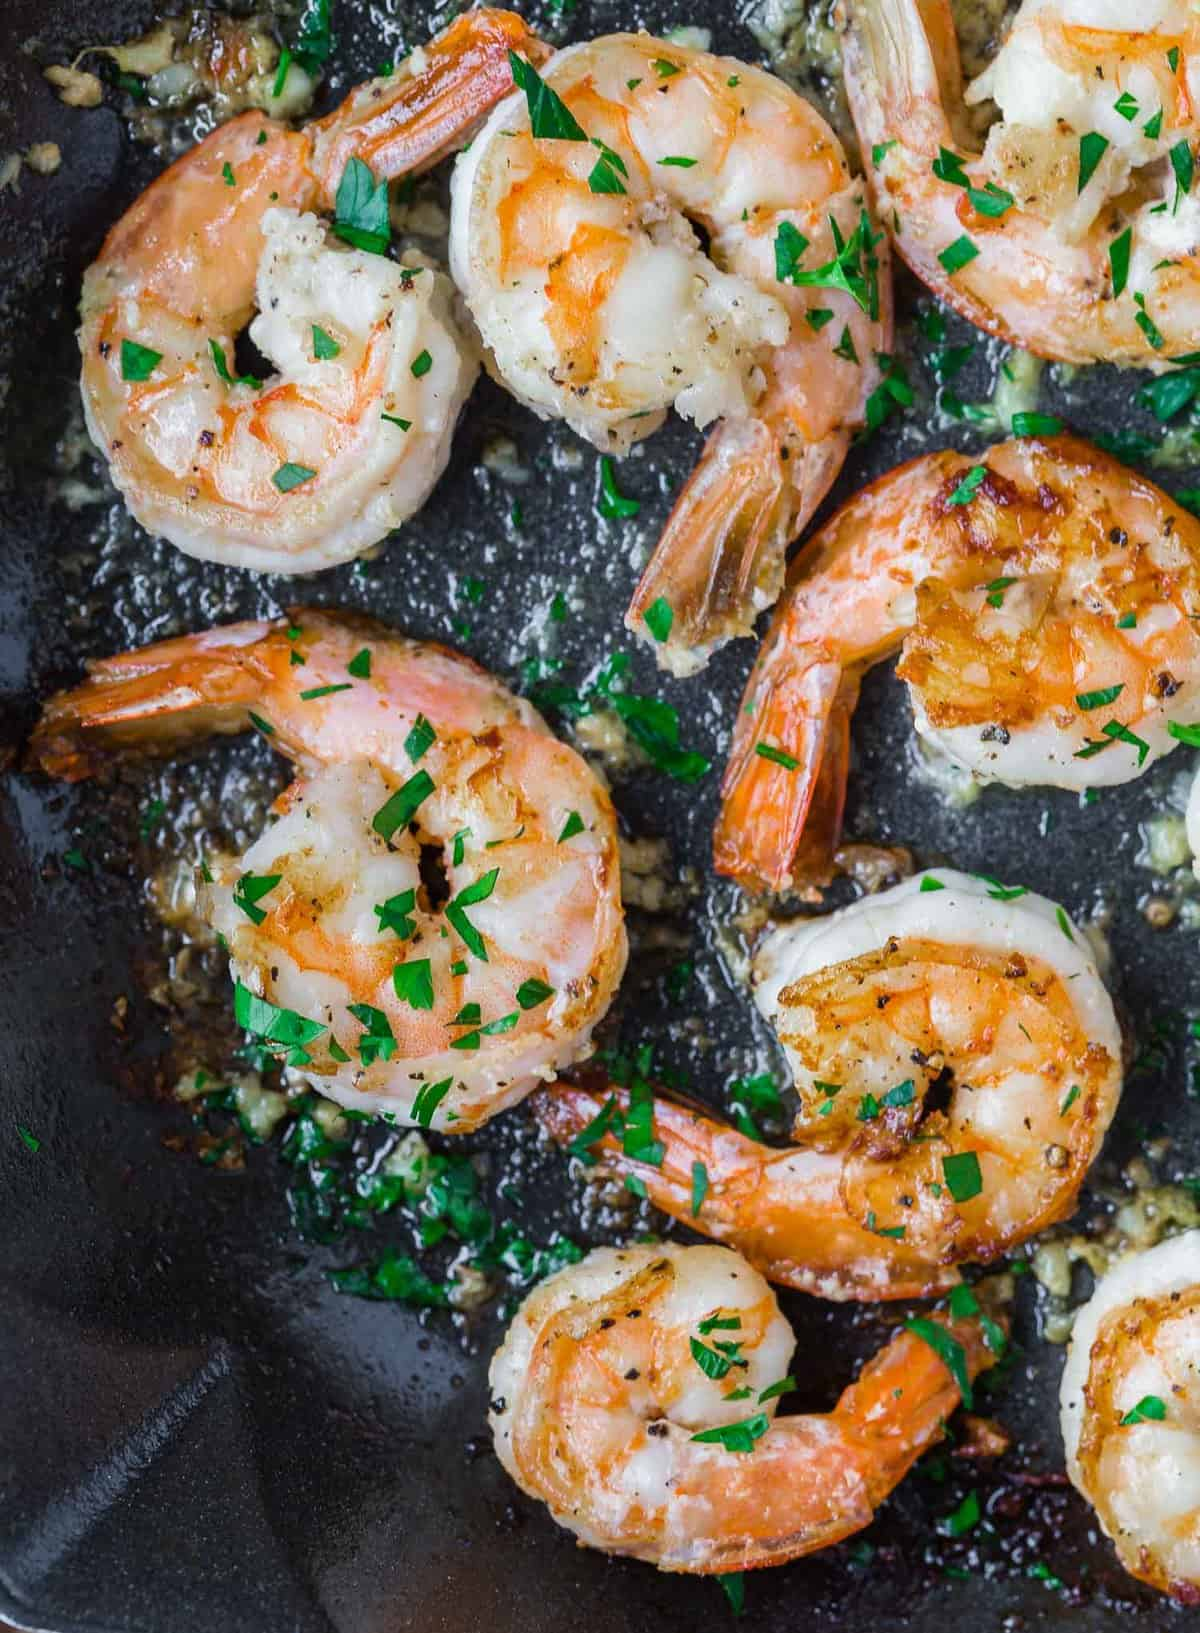 Shrimp with butter, garlic, and lemon. Garnished with parsley.